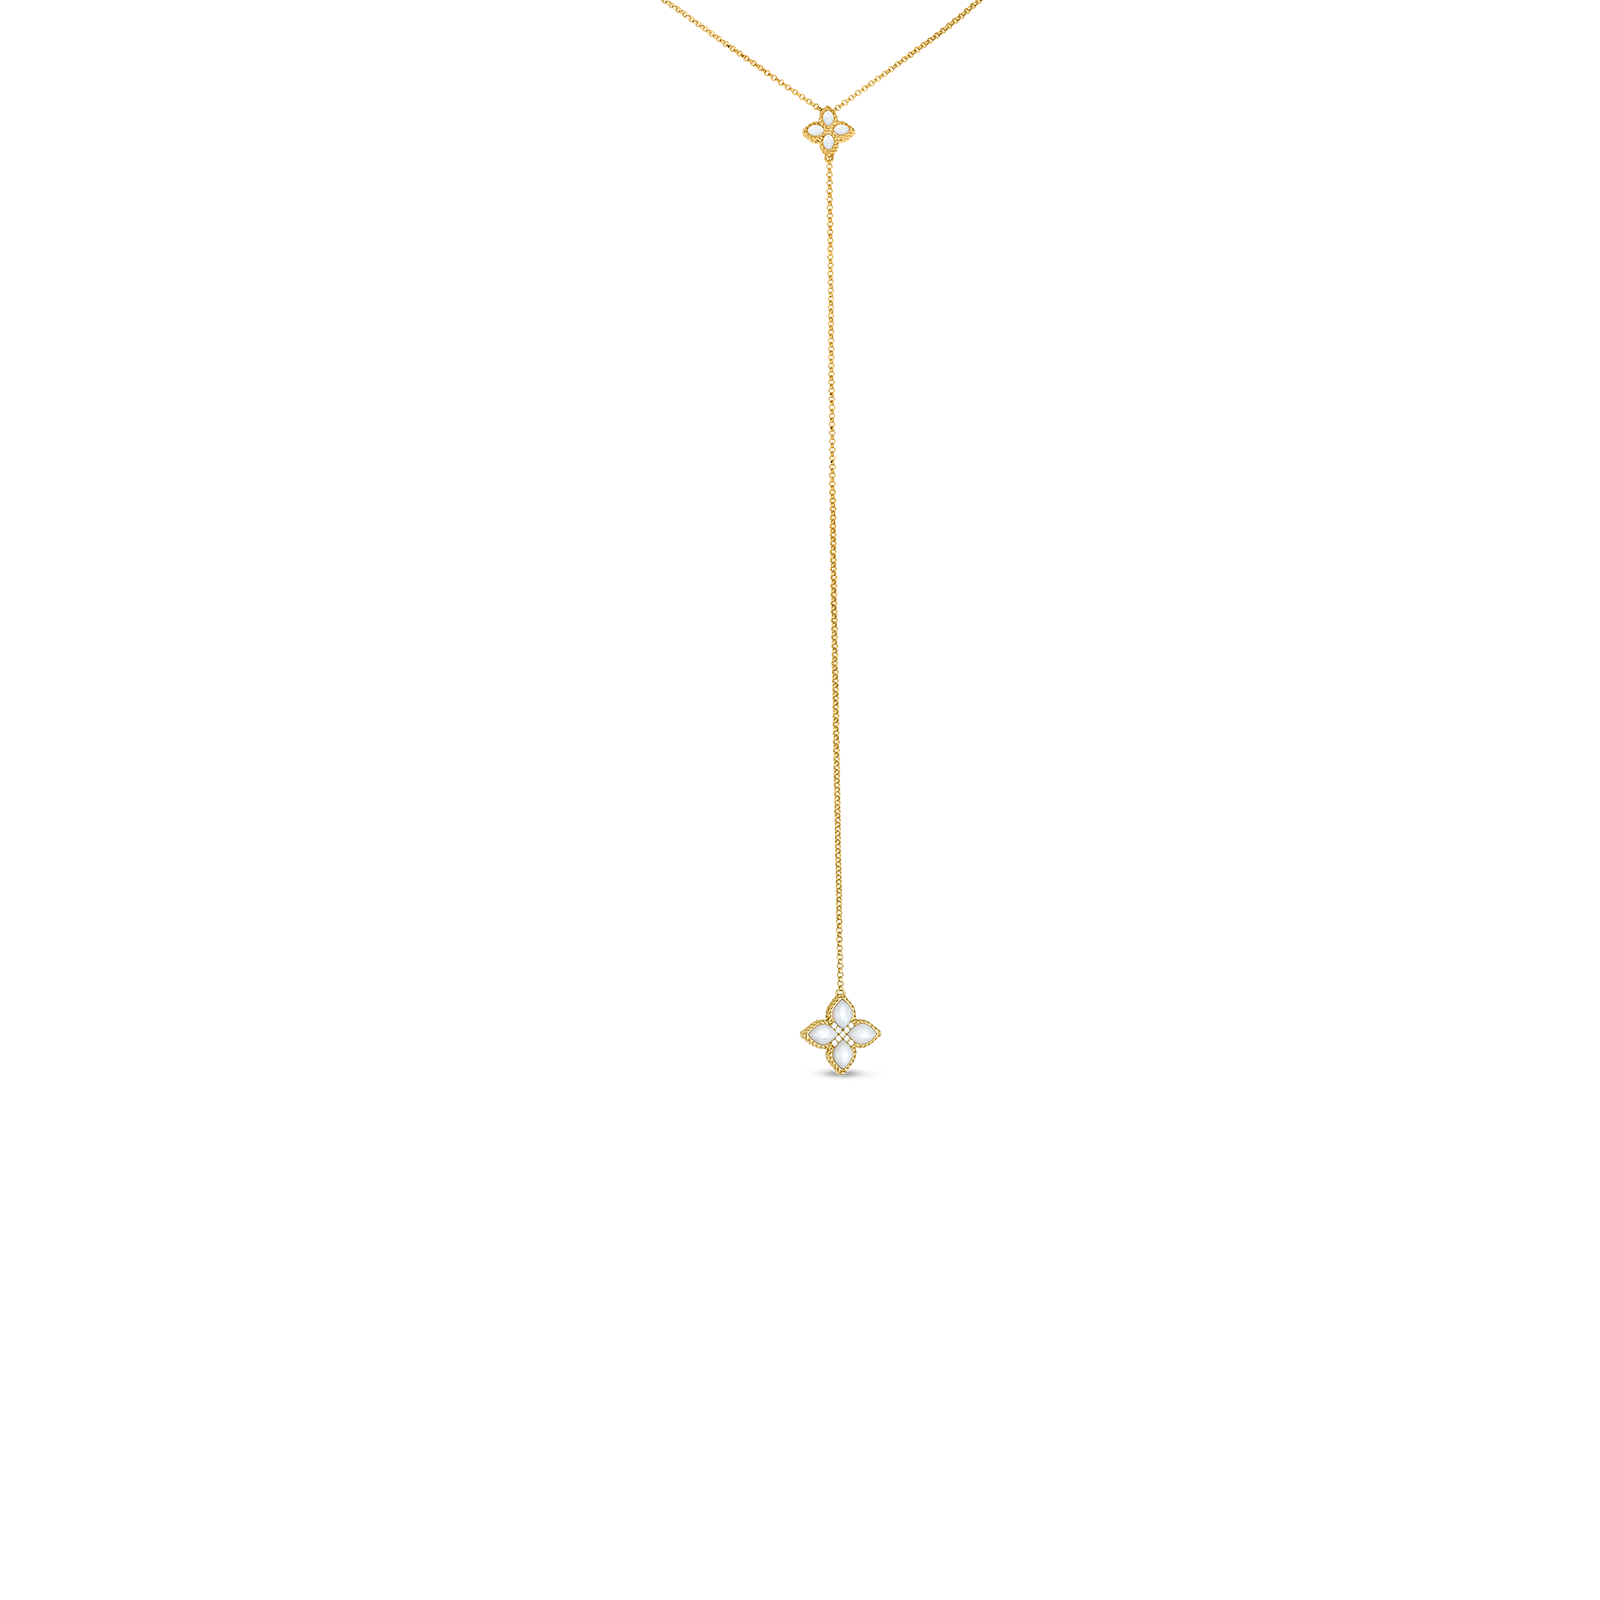 18kt diamond & mother-of-pearl lariat necklace